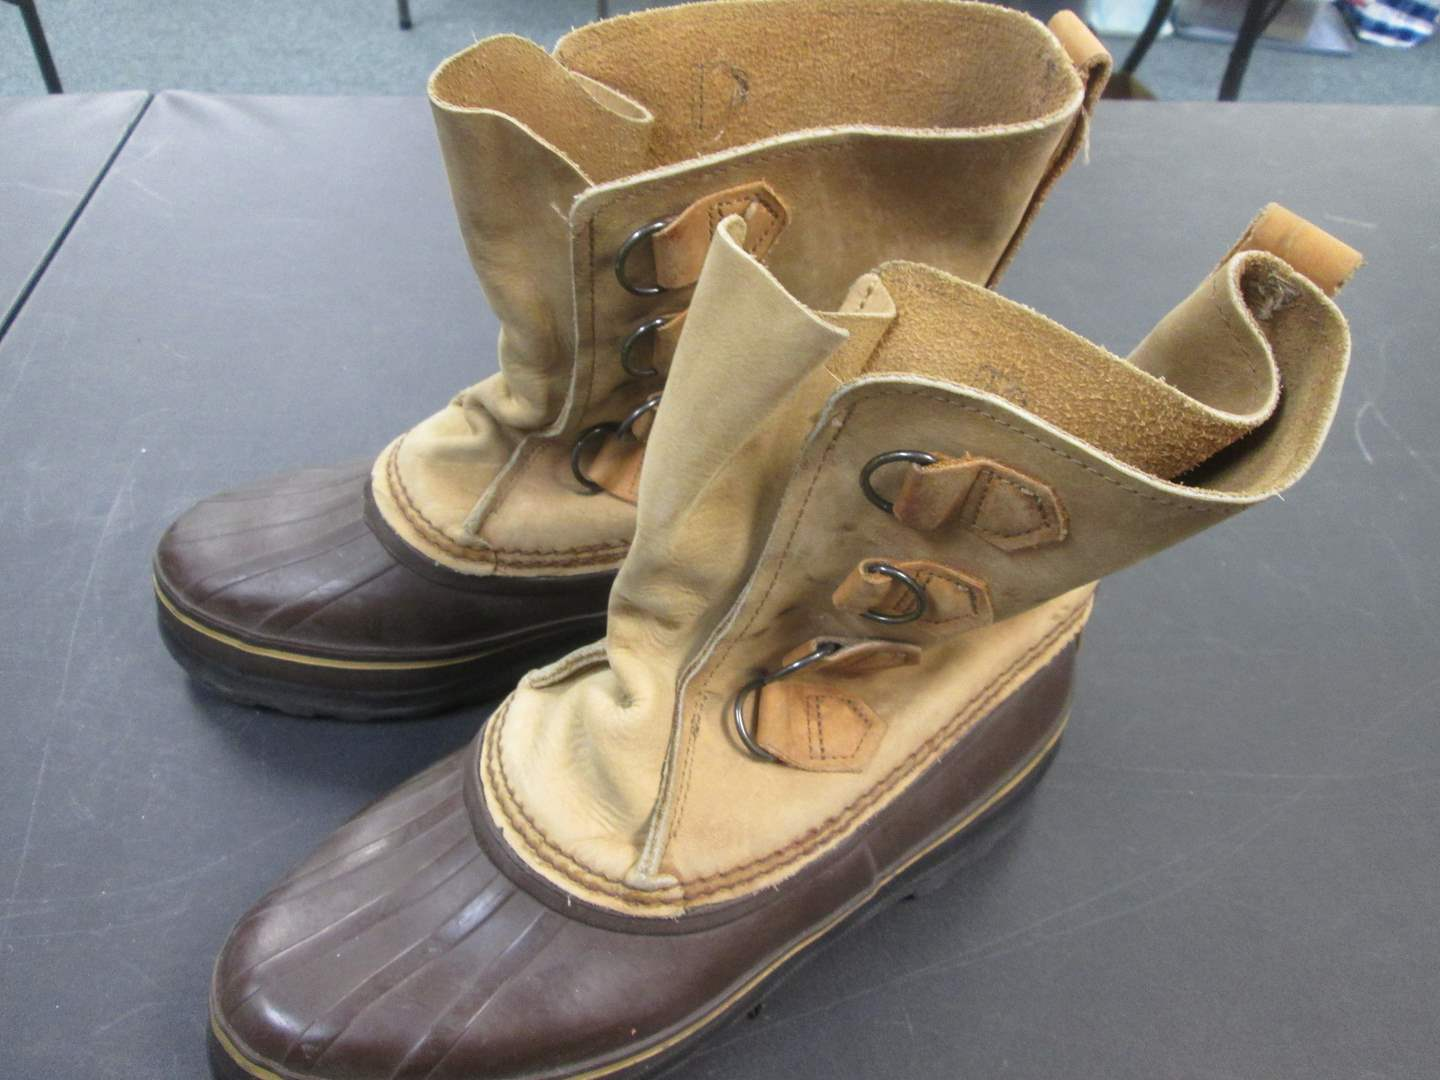 Lot # 56 - Sorel Iconic Hand Crafted Boots, Leather, Waterproof, Made Canada.  Need Liners! (main image)